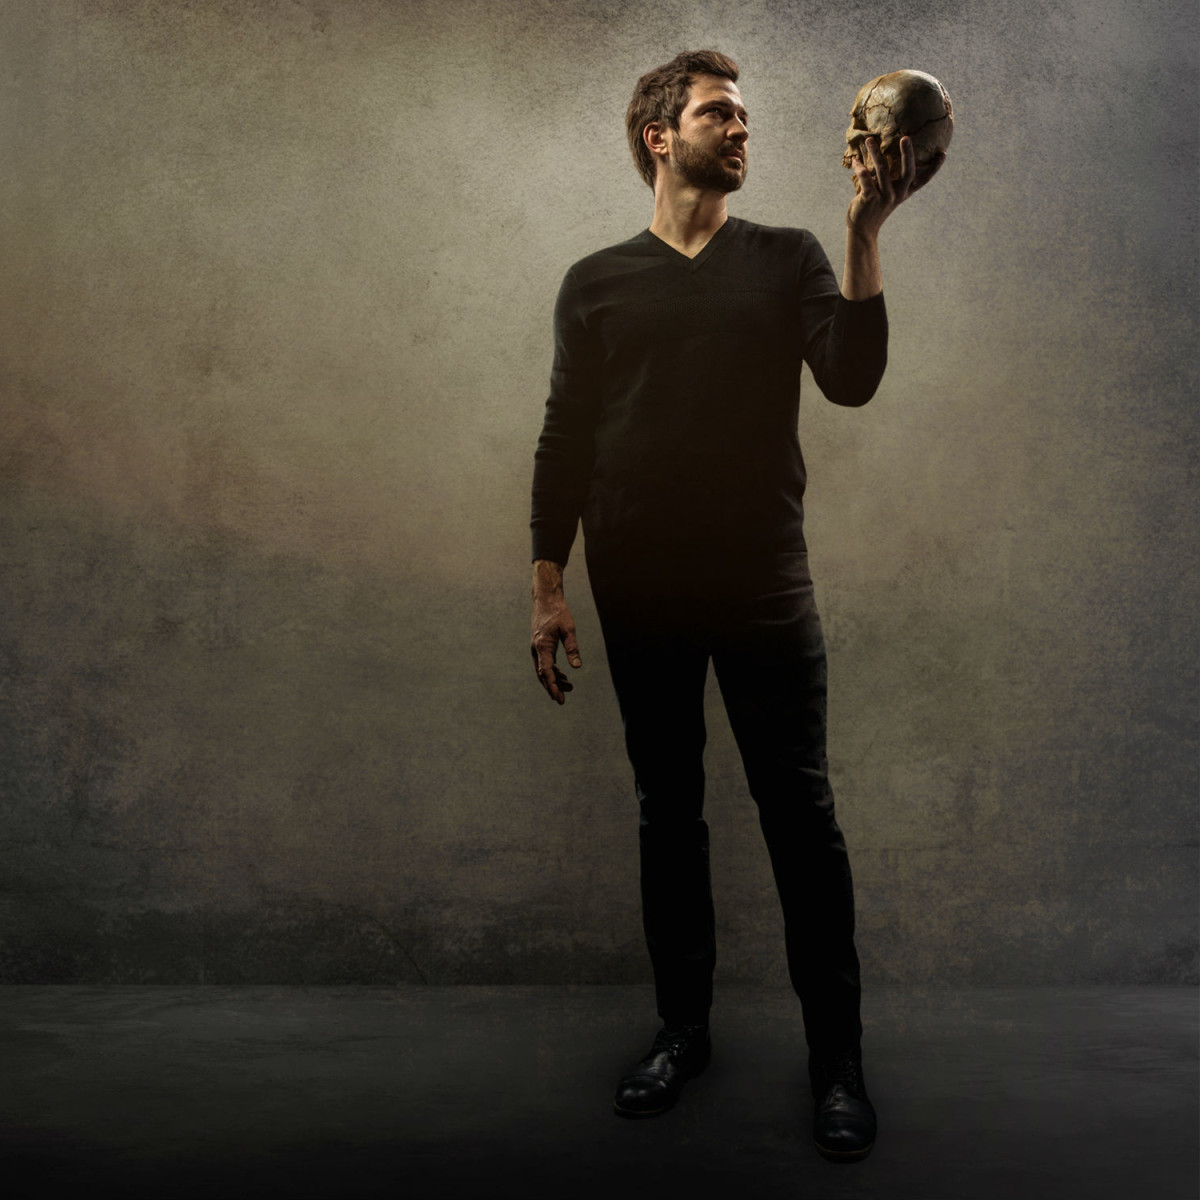 Shakespeare Dallas presents Hamlet